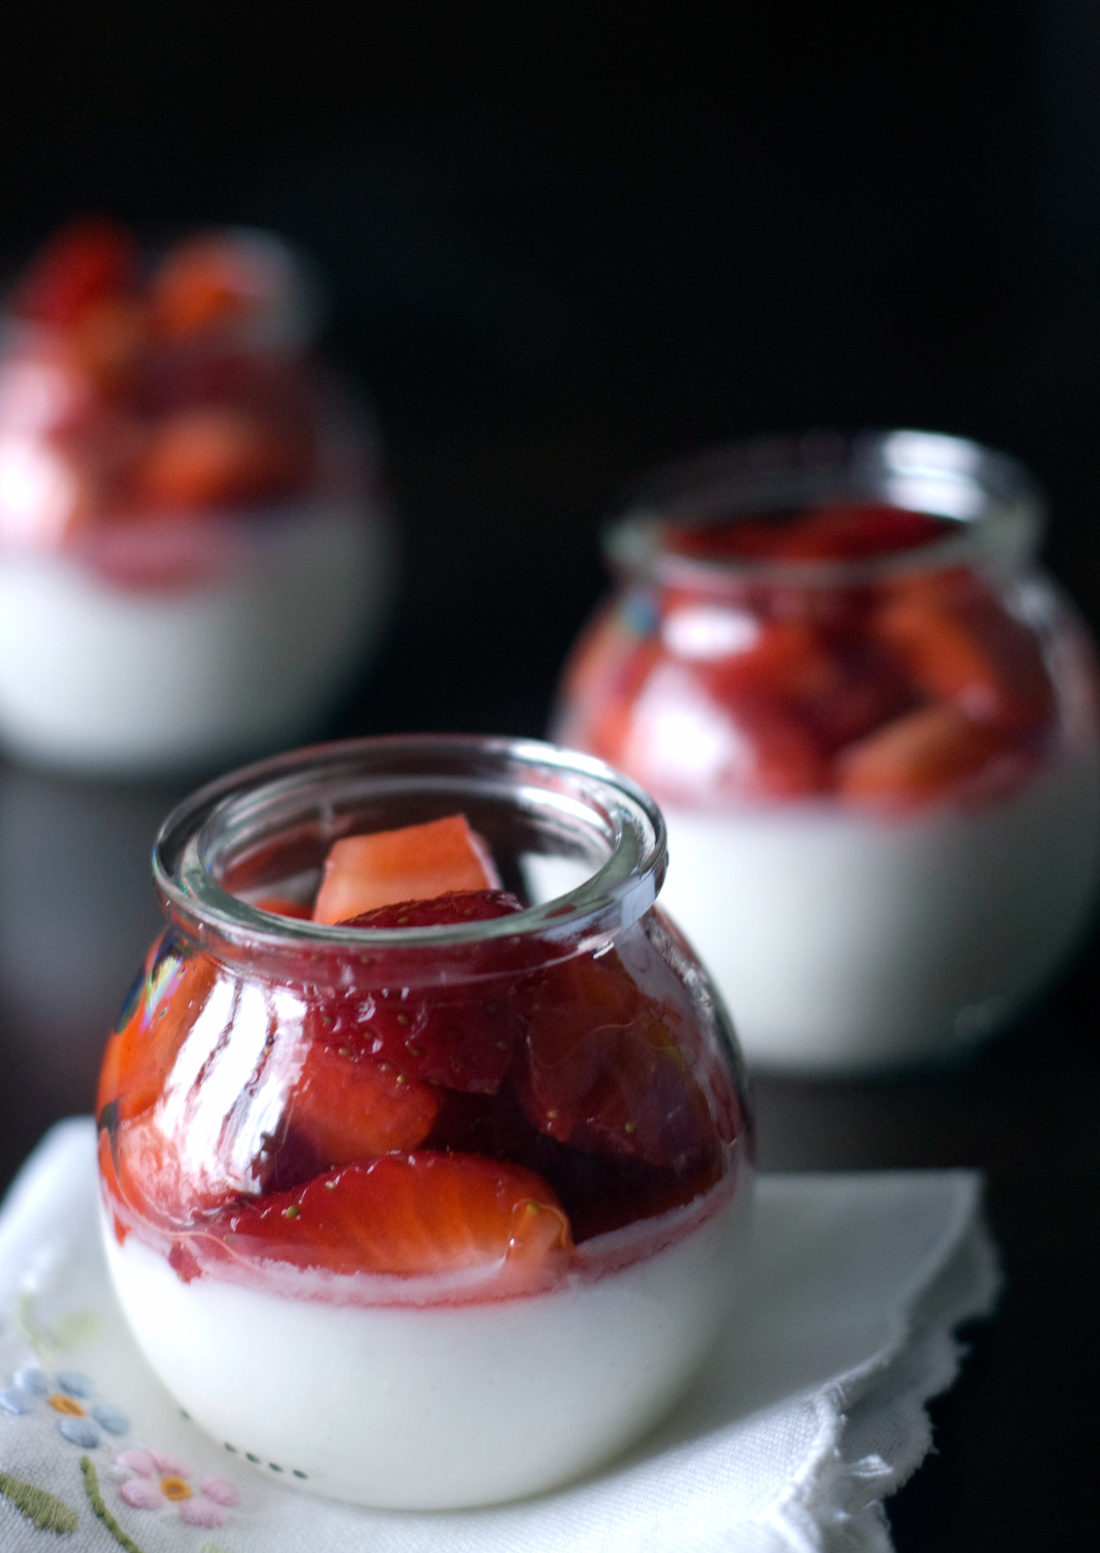 Panna cotta e morangos // Panna Cotta with Strawberries